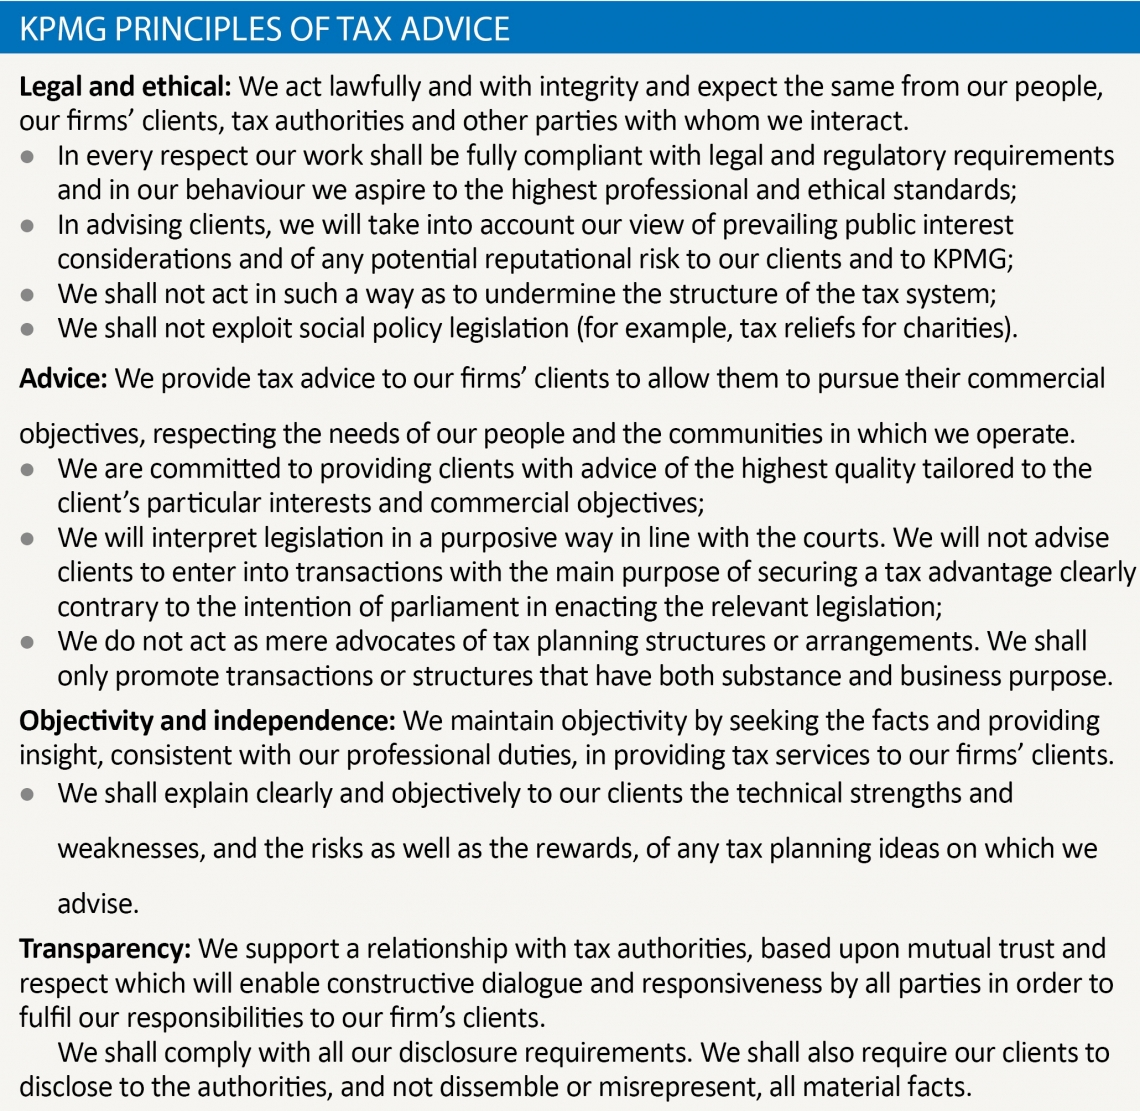 KPMG Principles of Tax Advice